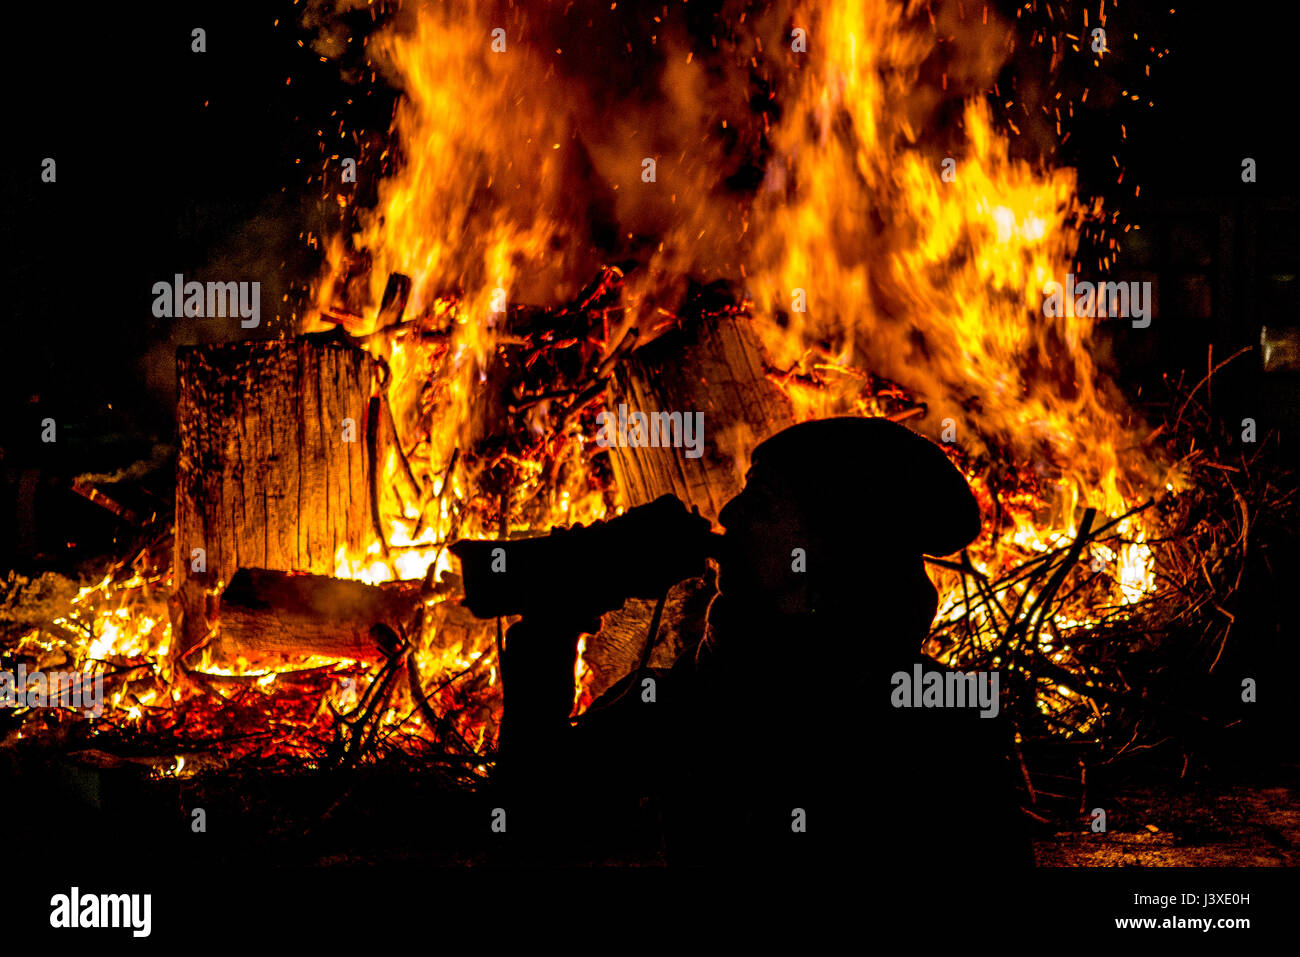 silhouette of a woman drinking from a bottle with background of sparks and tongues of bonfire - Stock Image